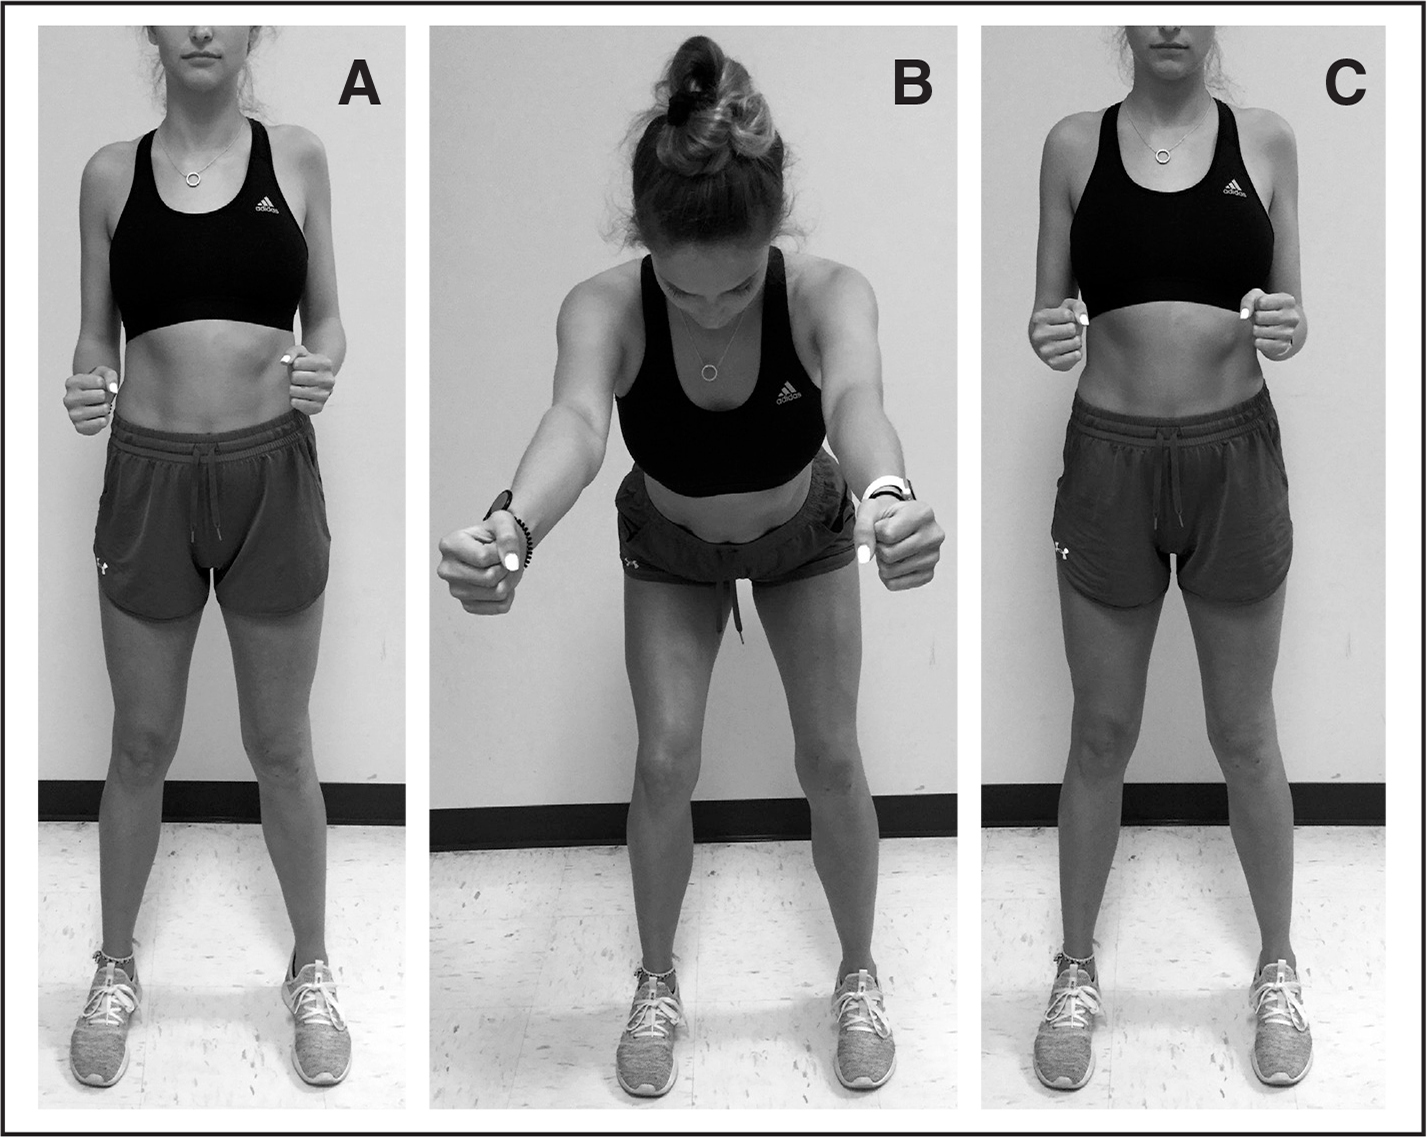 (A) Traditional row with body stationary. Kinetic chain row (B) beginning with trunk and knee flexion and (C) moving to a fully erect position.